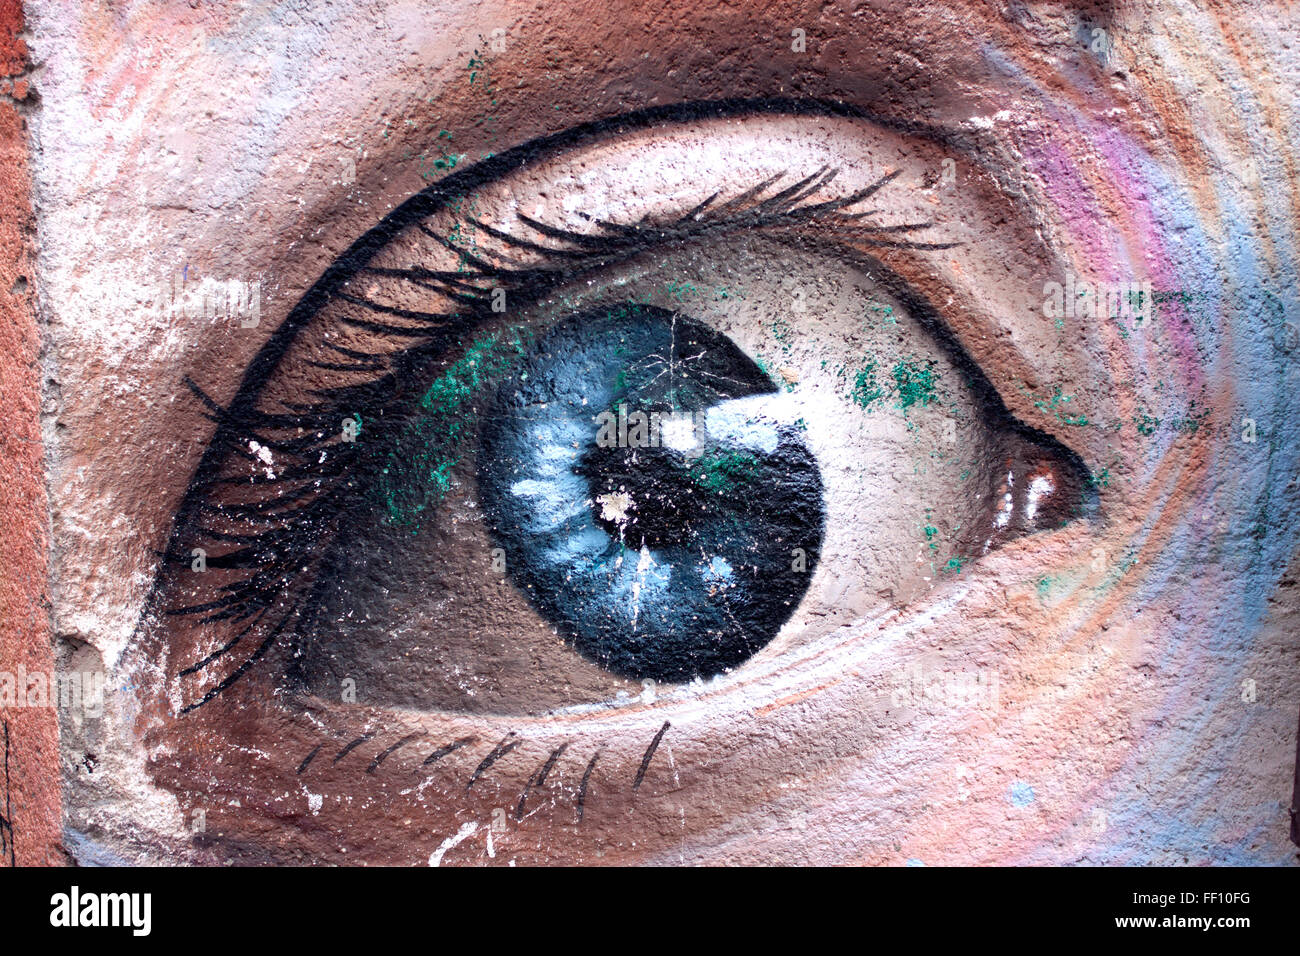 A painting of an eye decorates a wall in a street of Baeza, Jaen, Andalusia, Spain - Stock Image